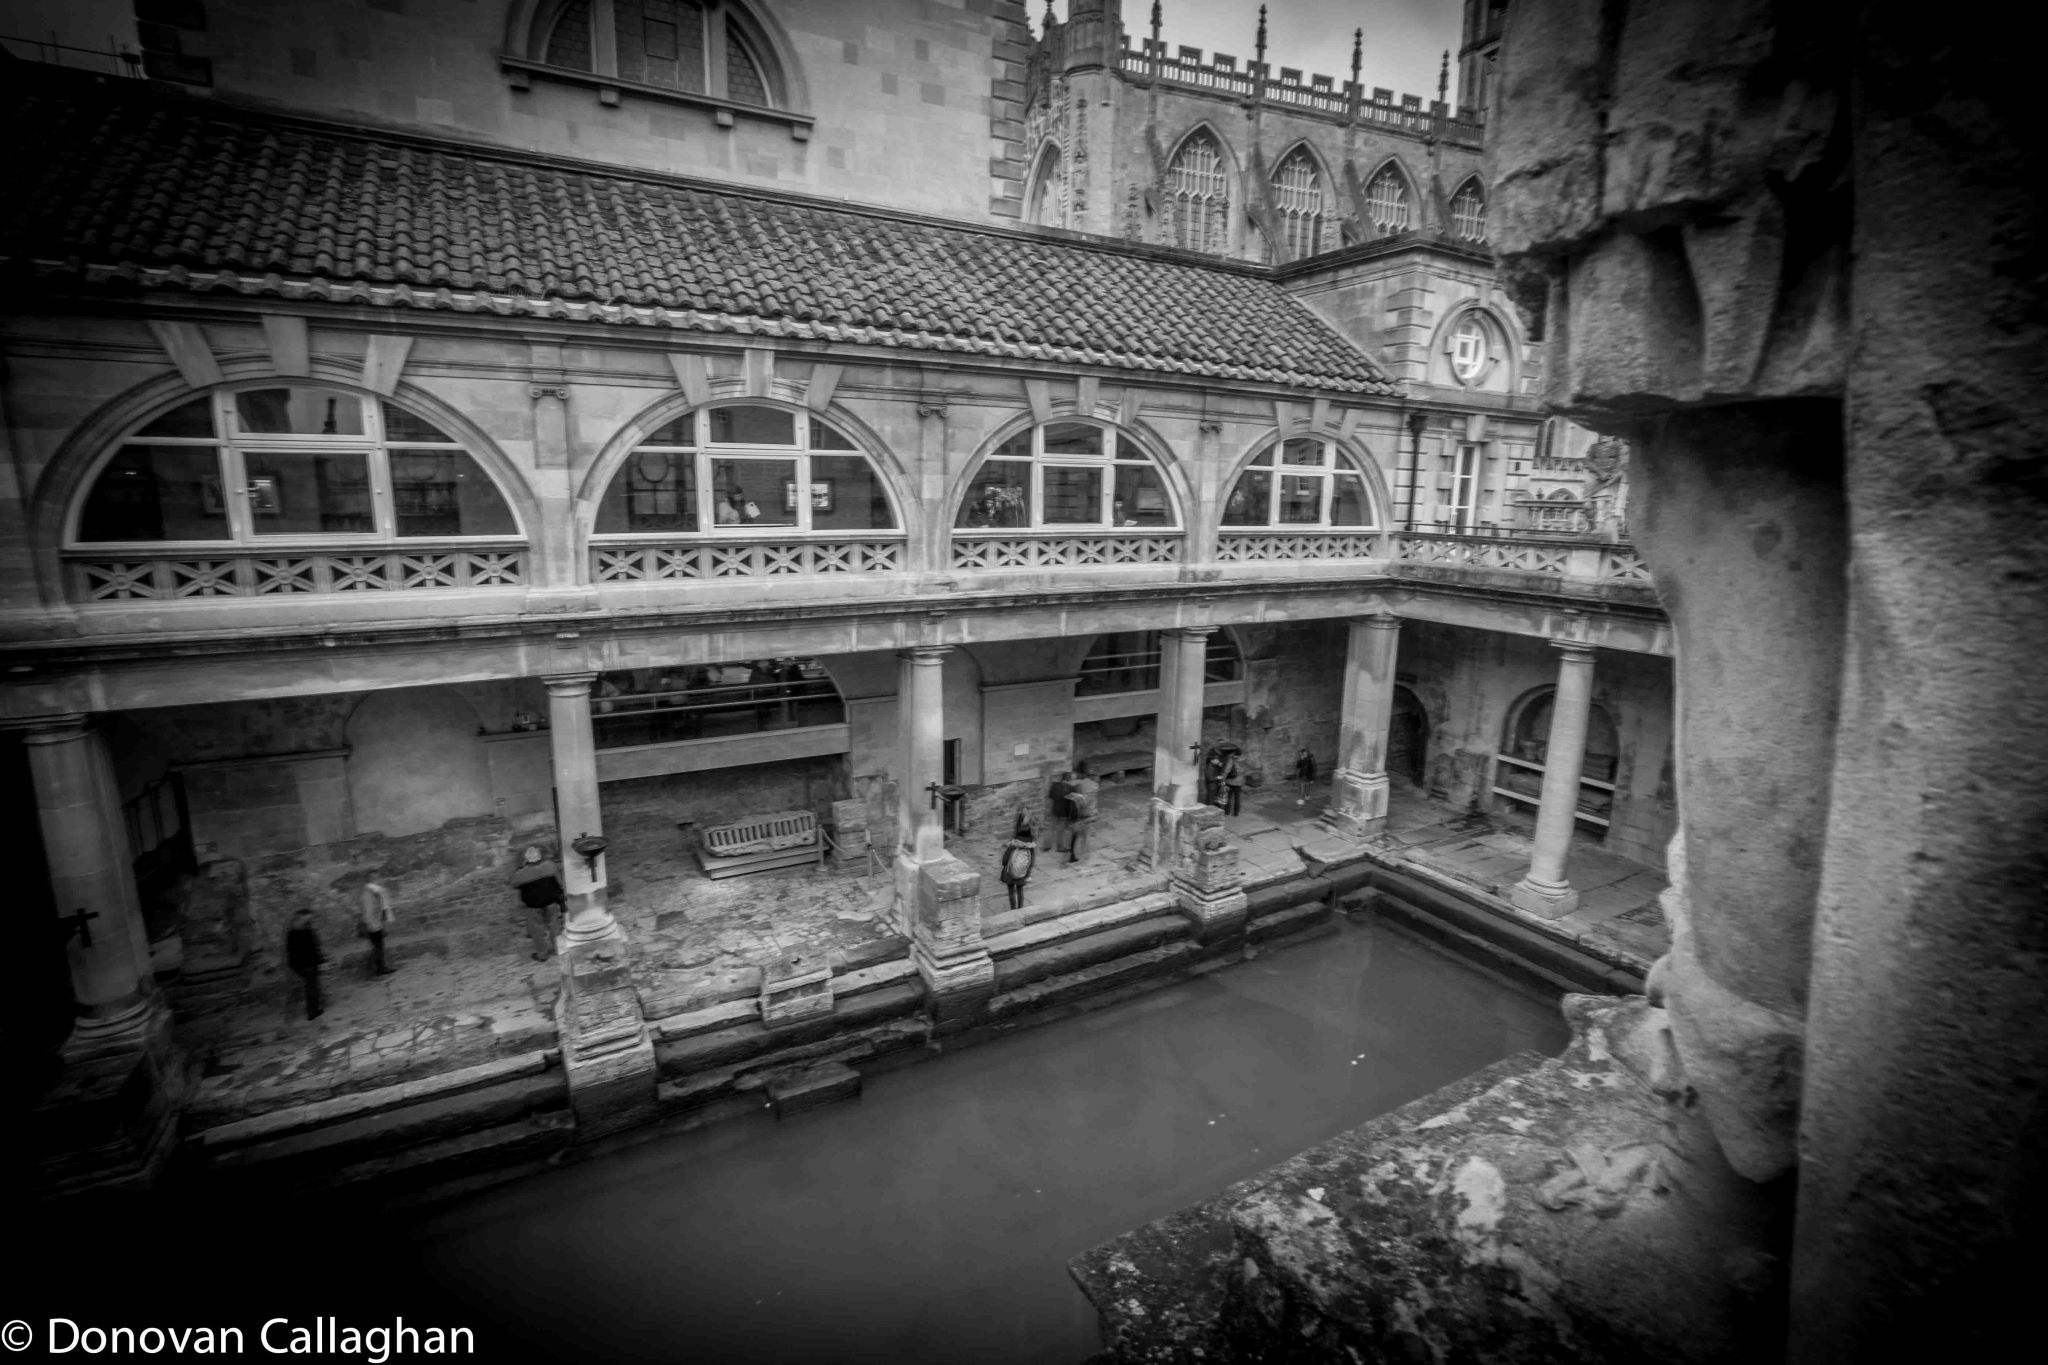 Bath Roman Baths, United Kingdom